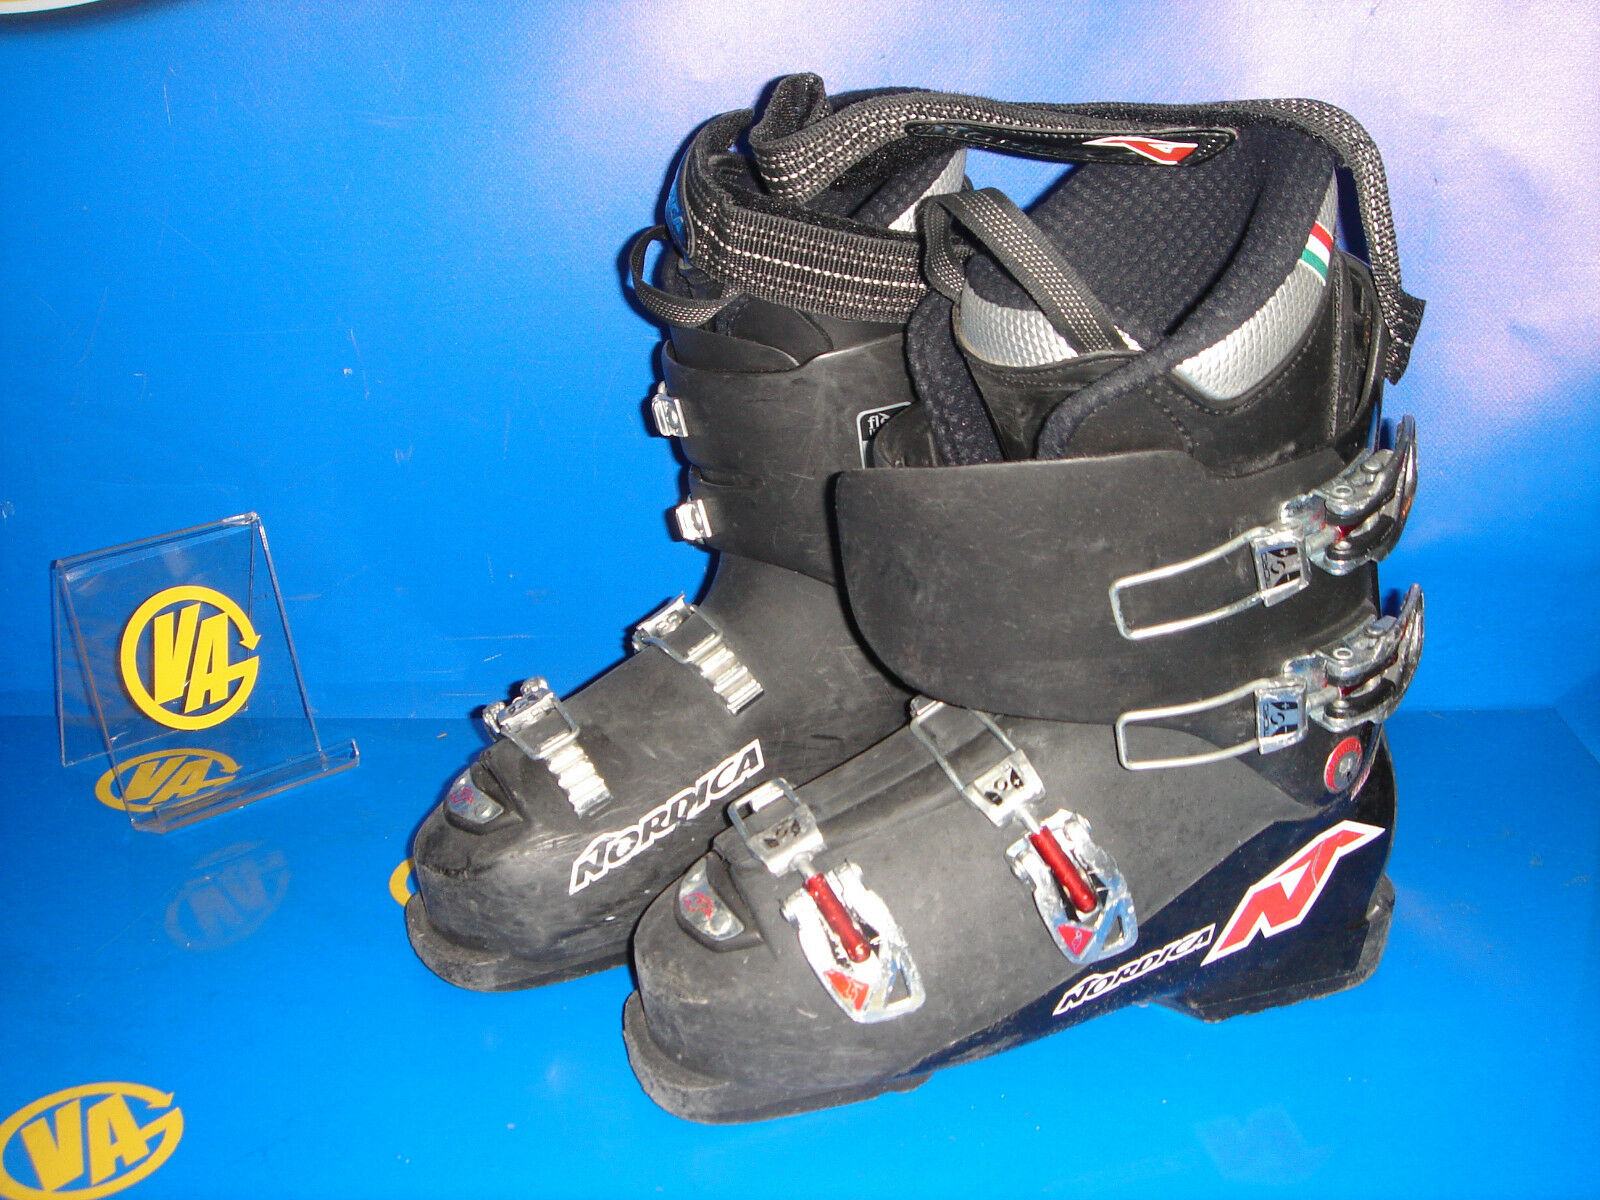 Boots skiing NORDICA Team 70 Junior for skis size 39- 255 mm